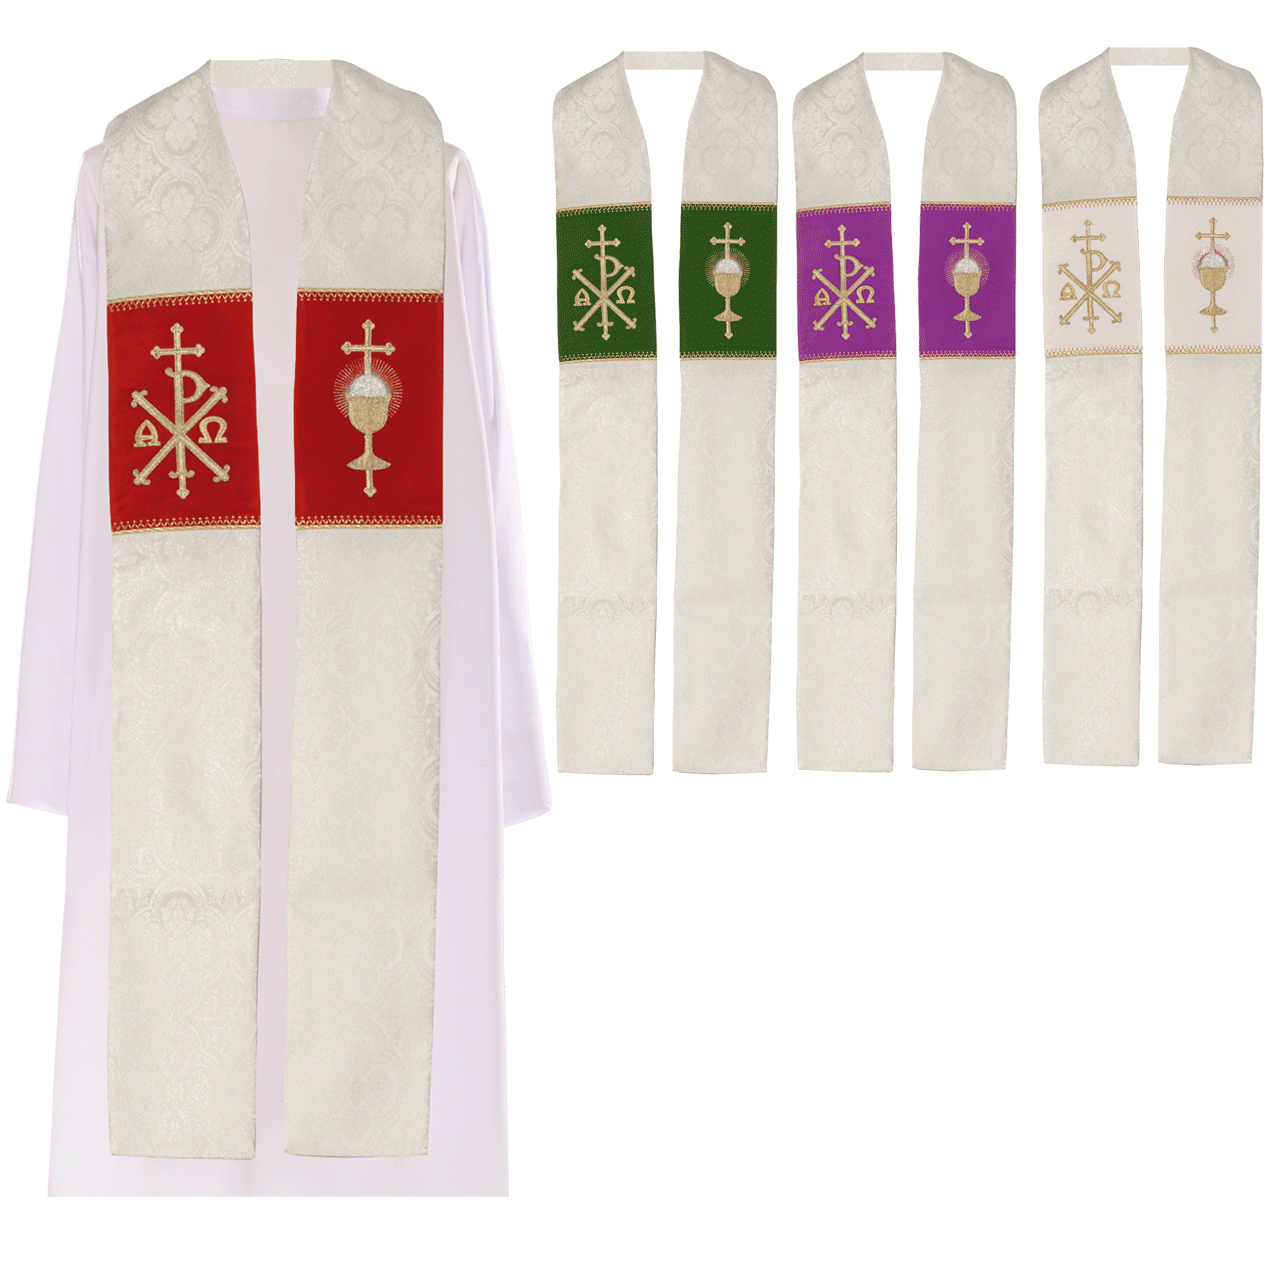 Priest stole chi rho alpha and omega available in 4 accent colors f c ziegler company